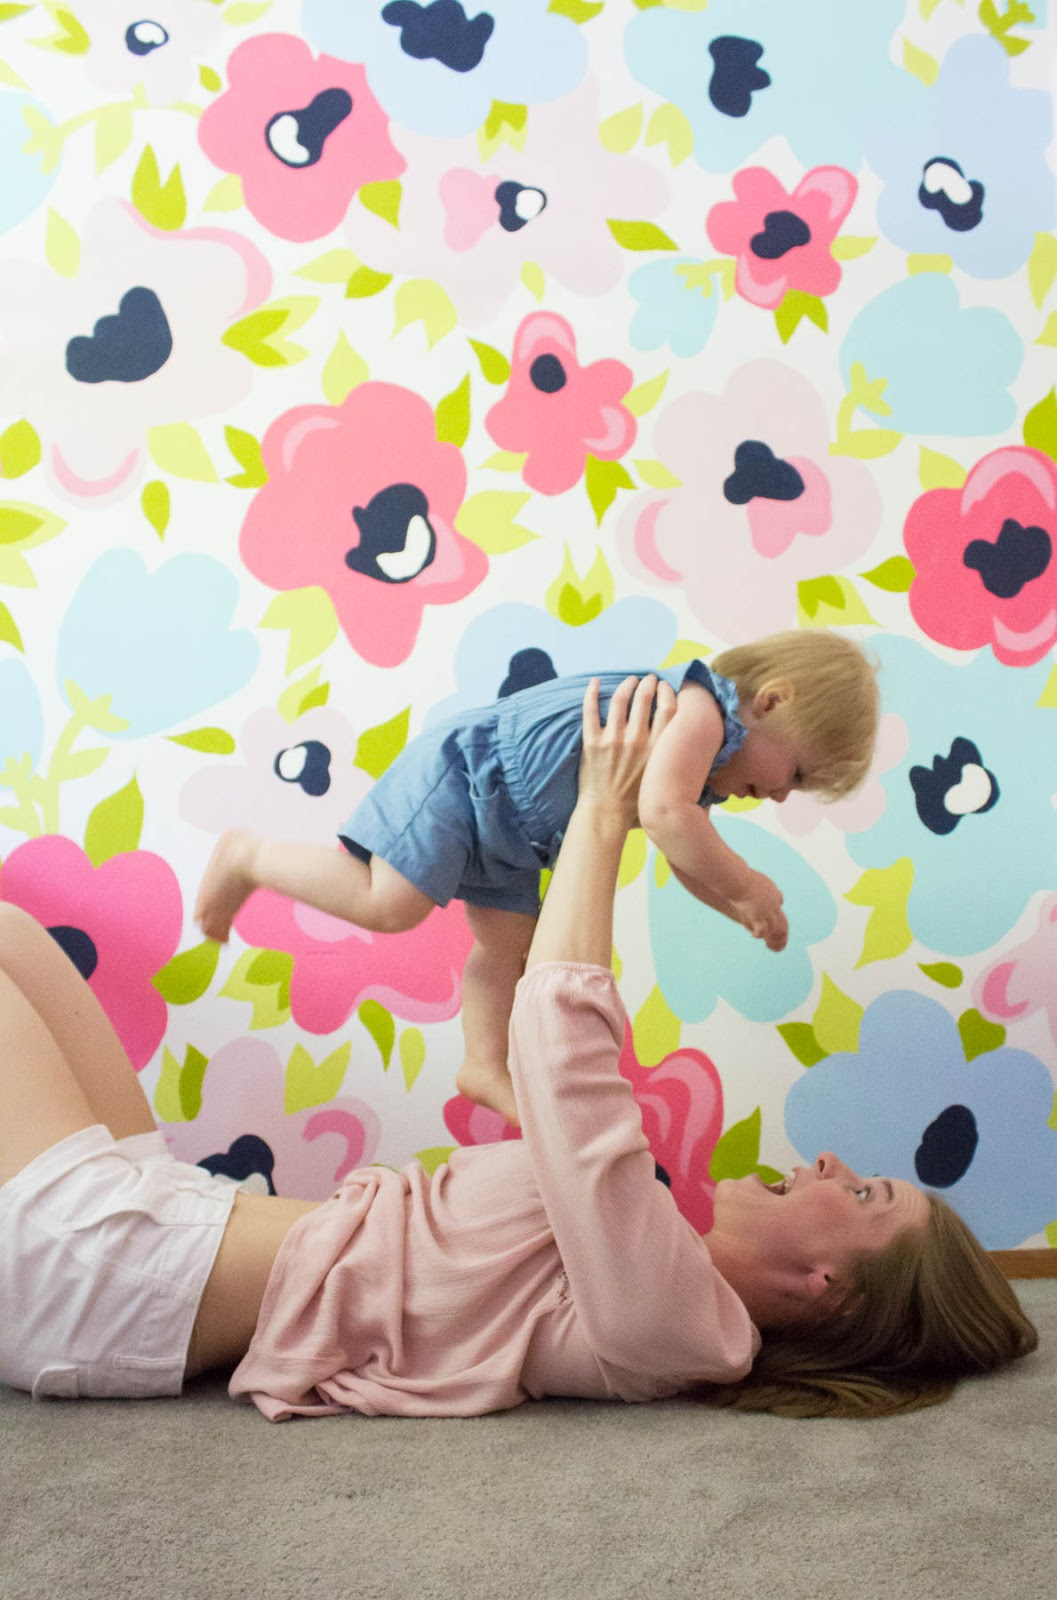 Addy S Bedroom Reveal One Year Old Photoshoot Chandelier